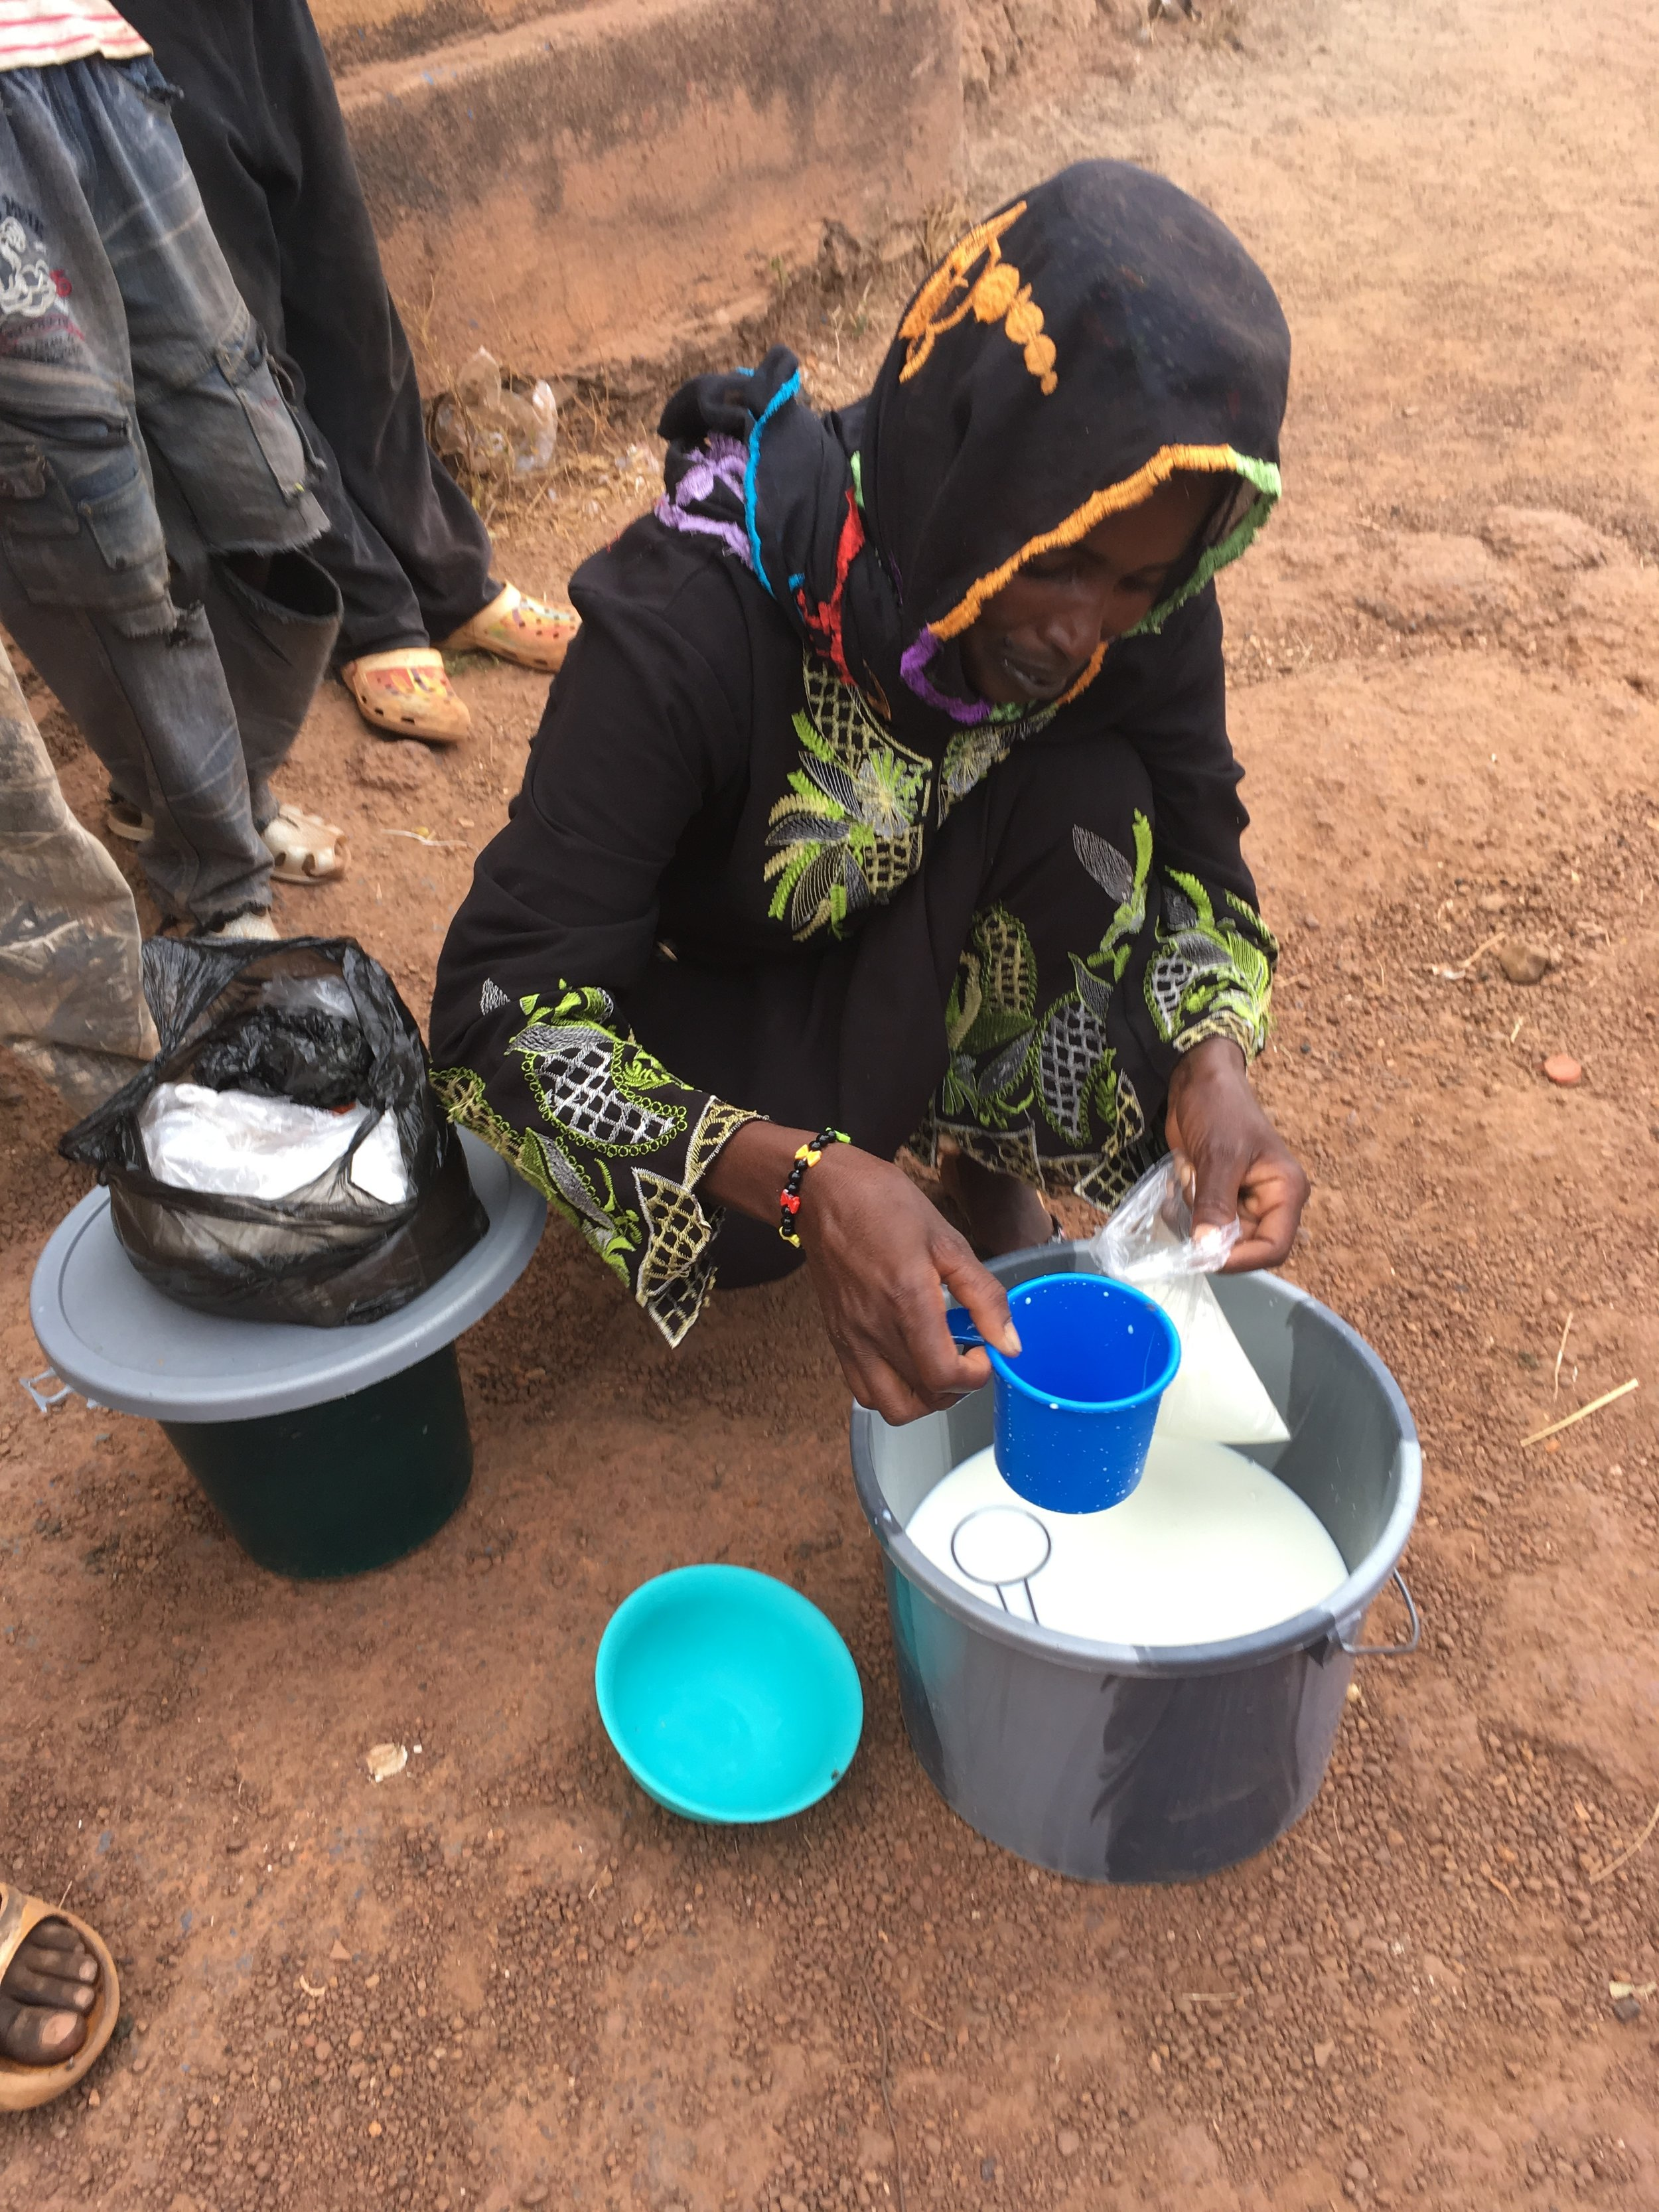 Buying milk at the market in Mali.